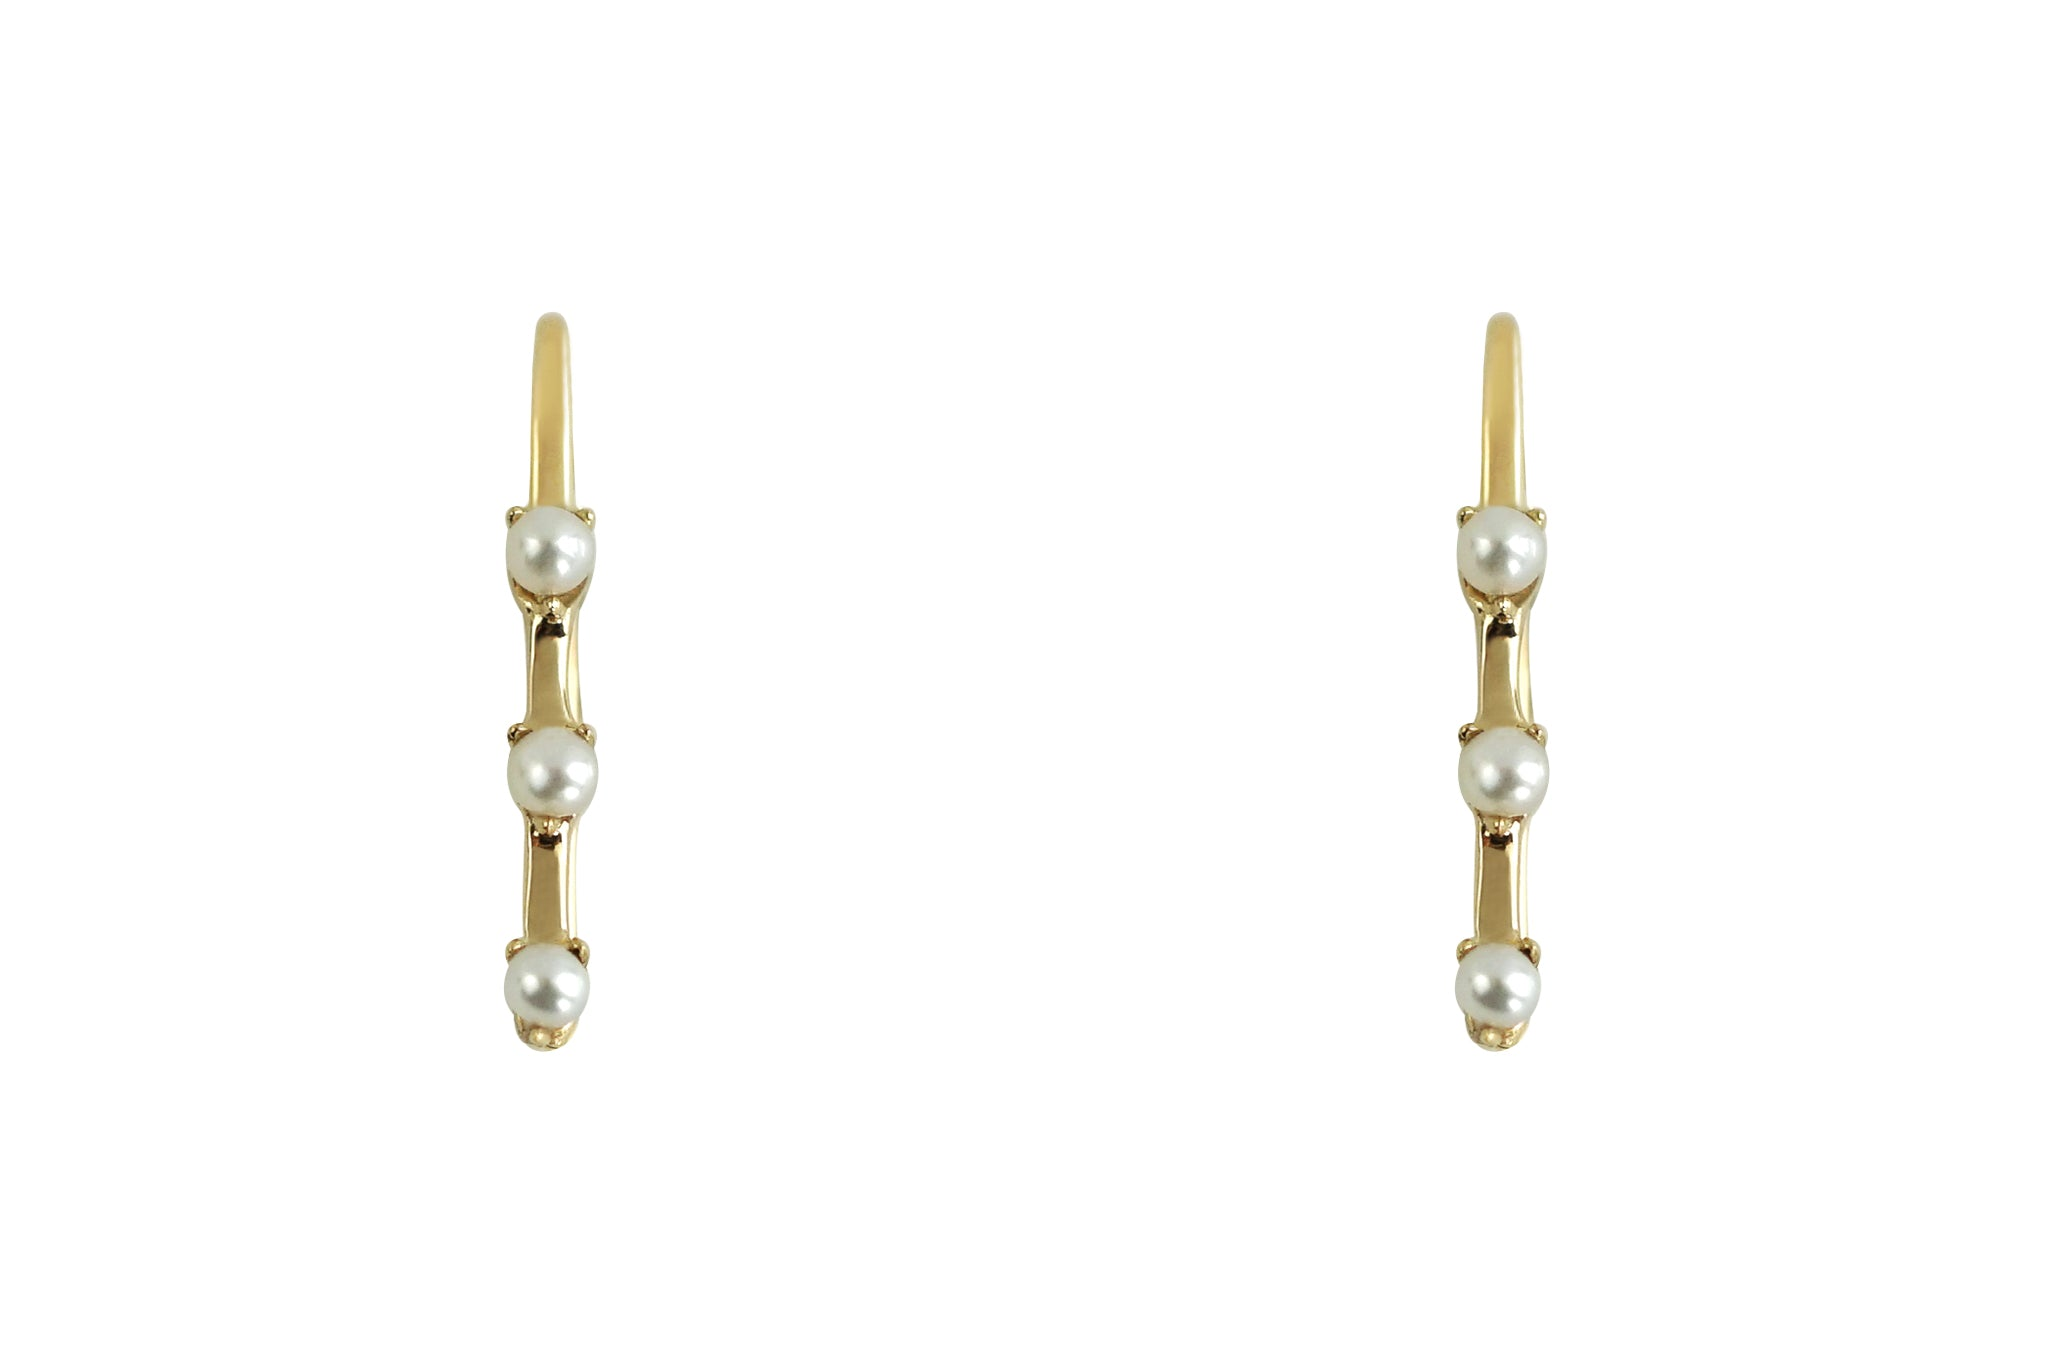 Pearl Riviera Ear Climber Earrings